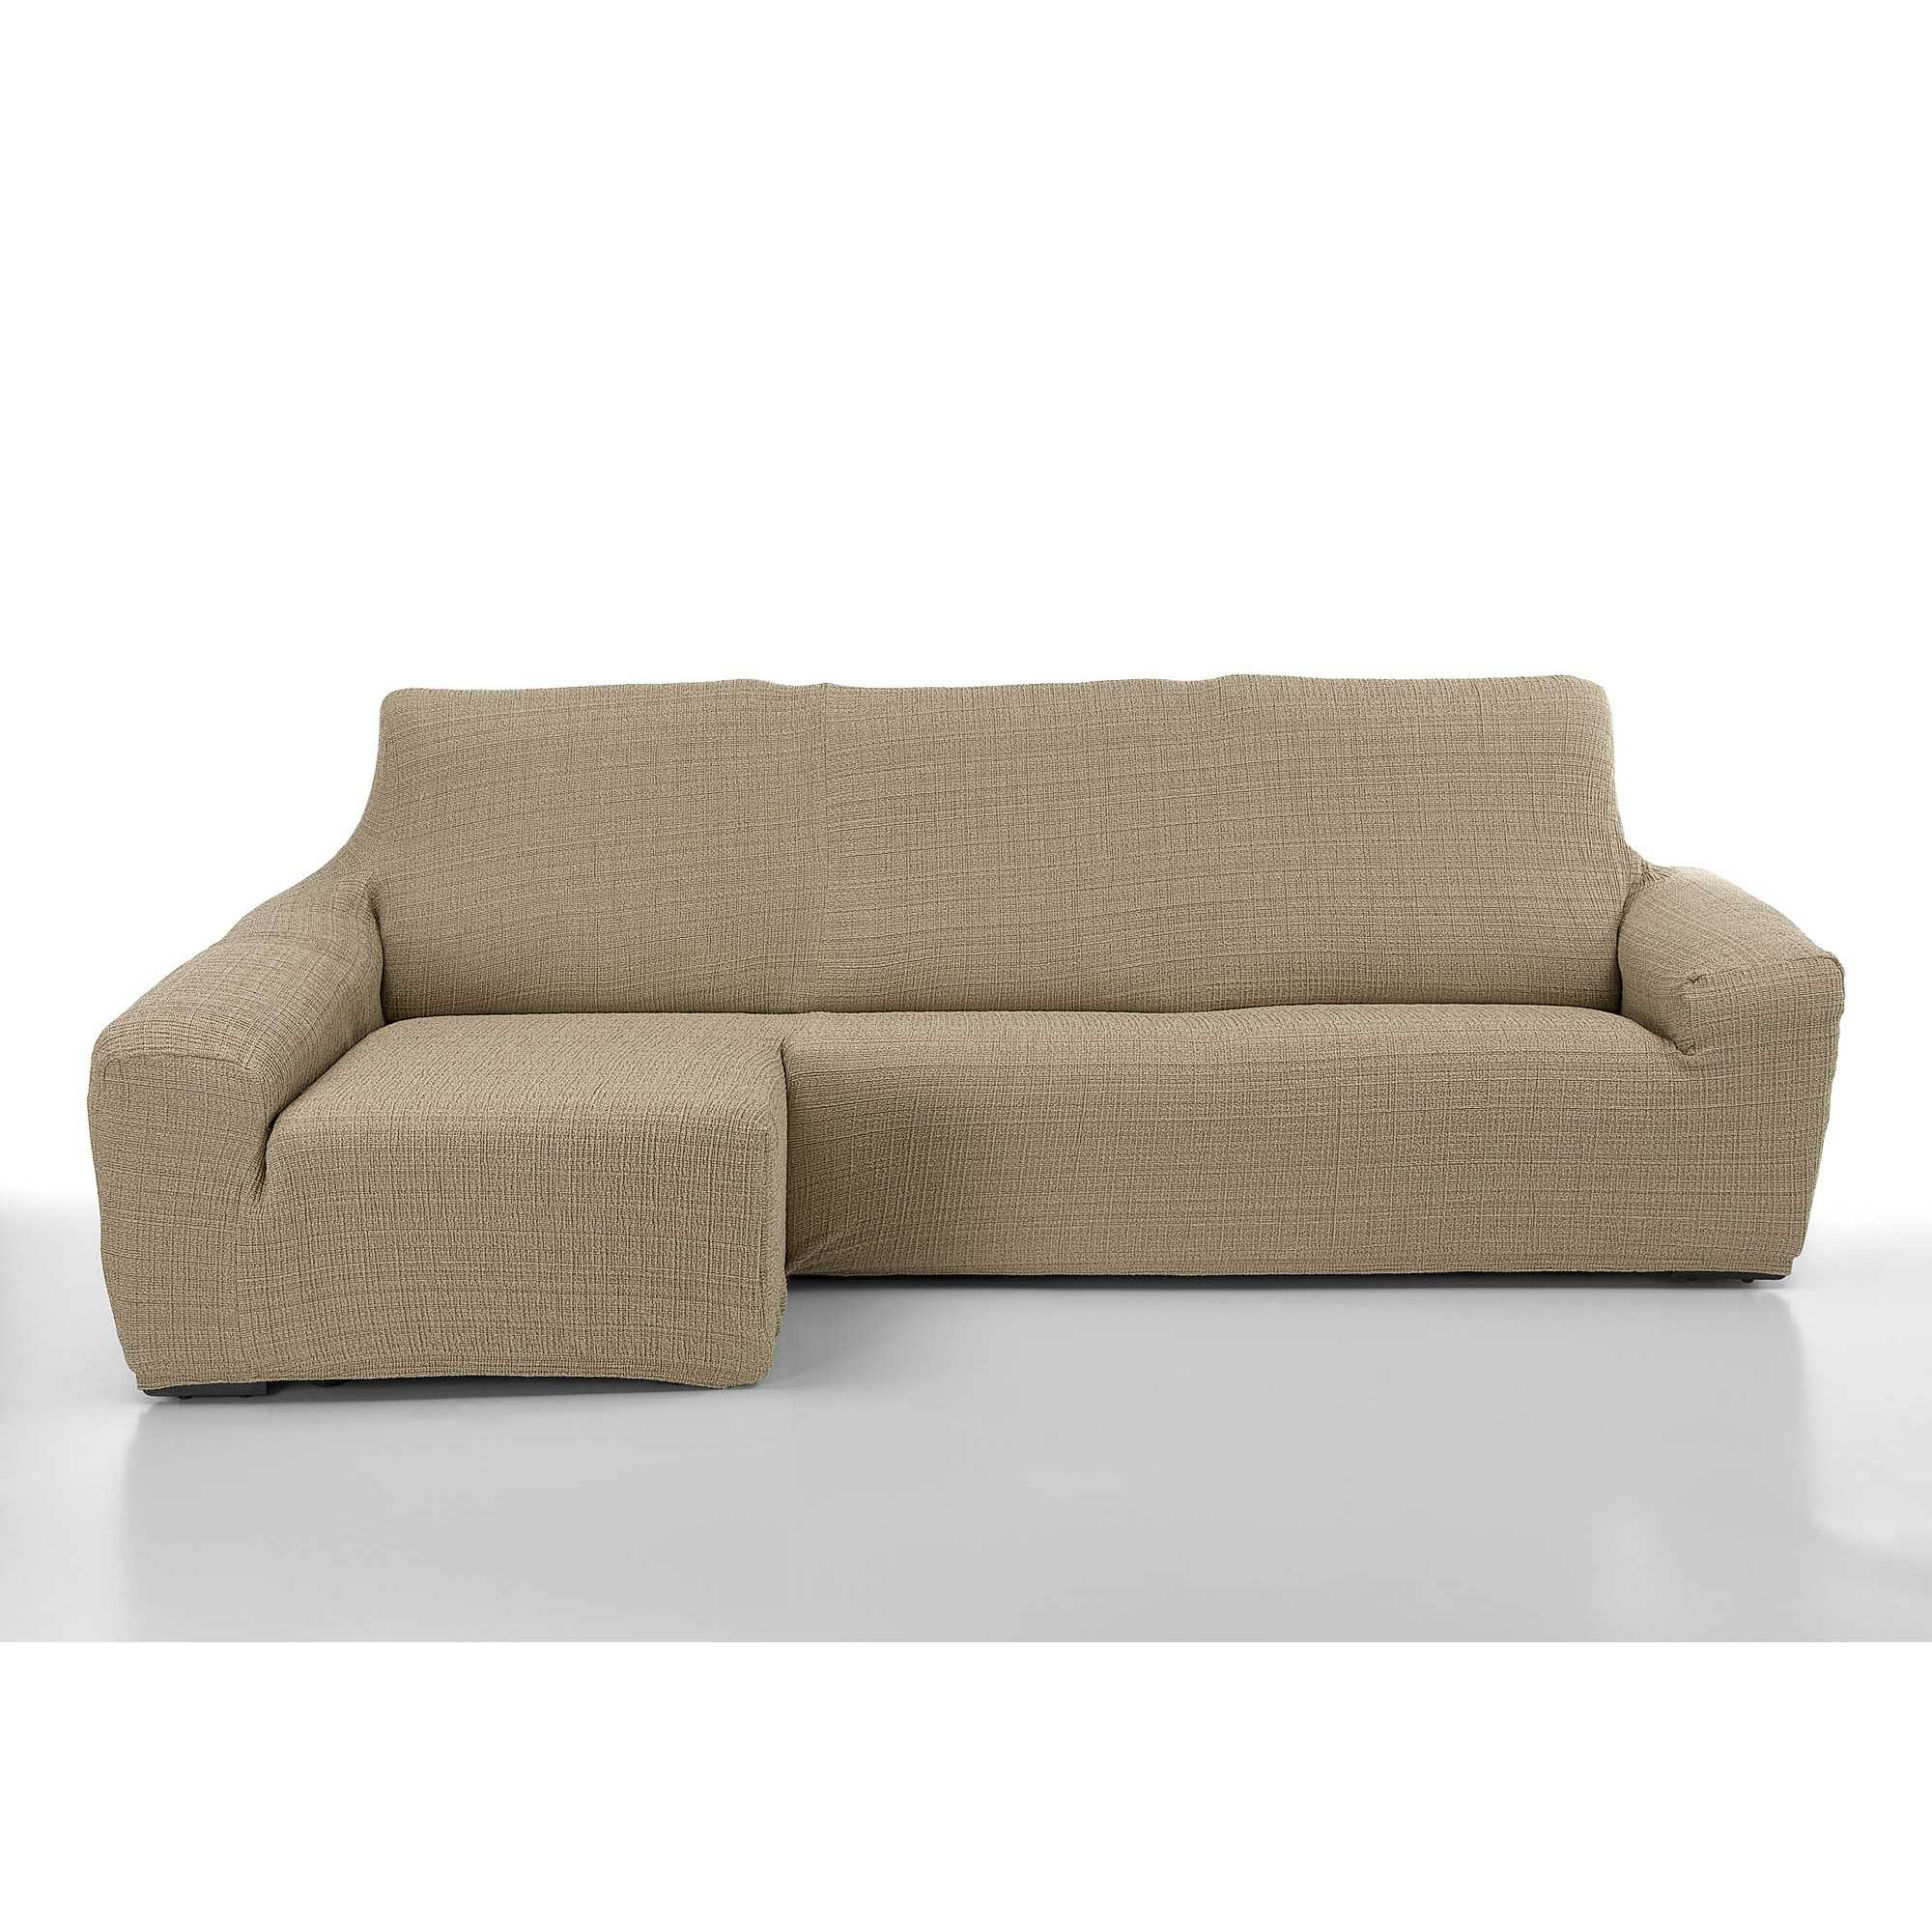 CHAISE LONGUE LUGANO TAUPE